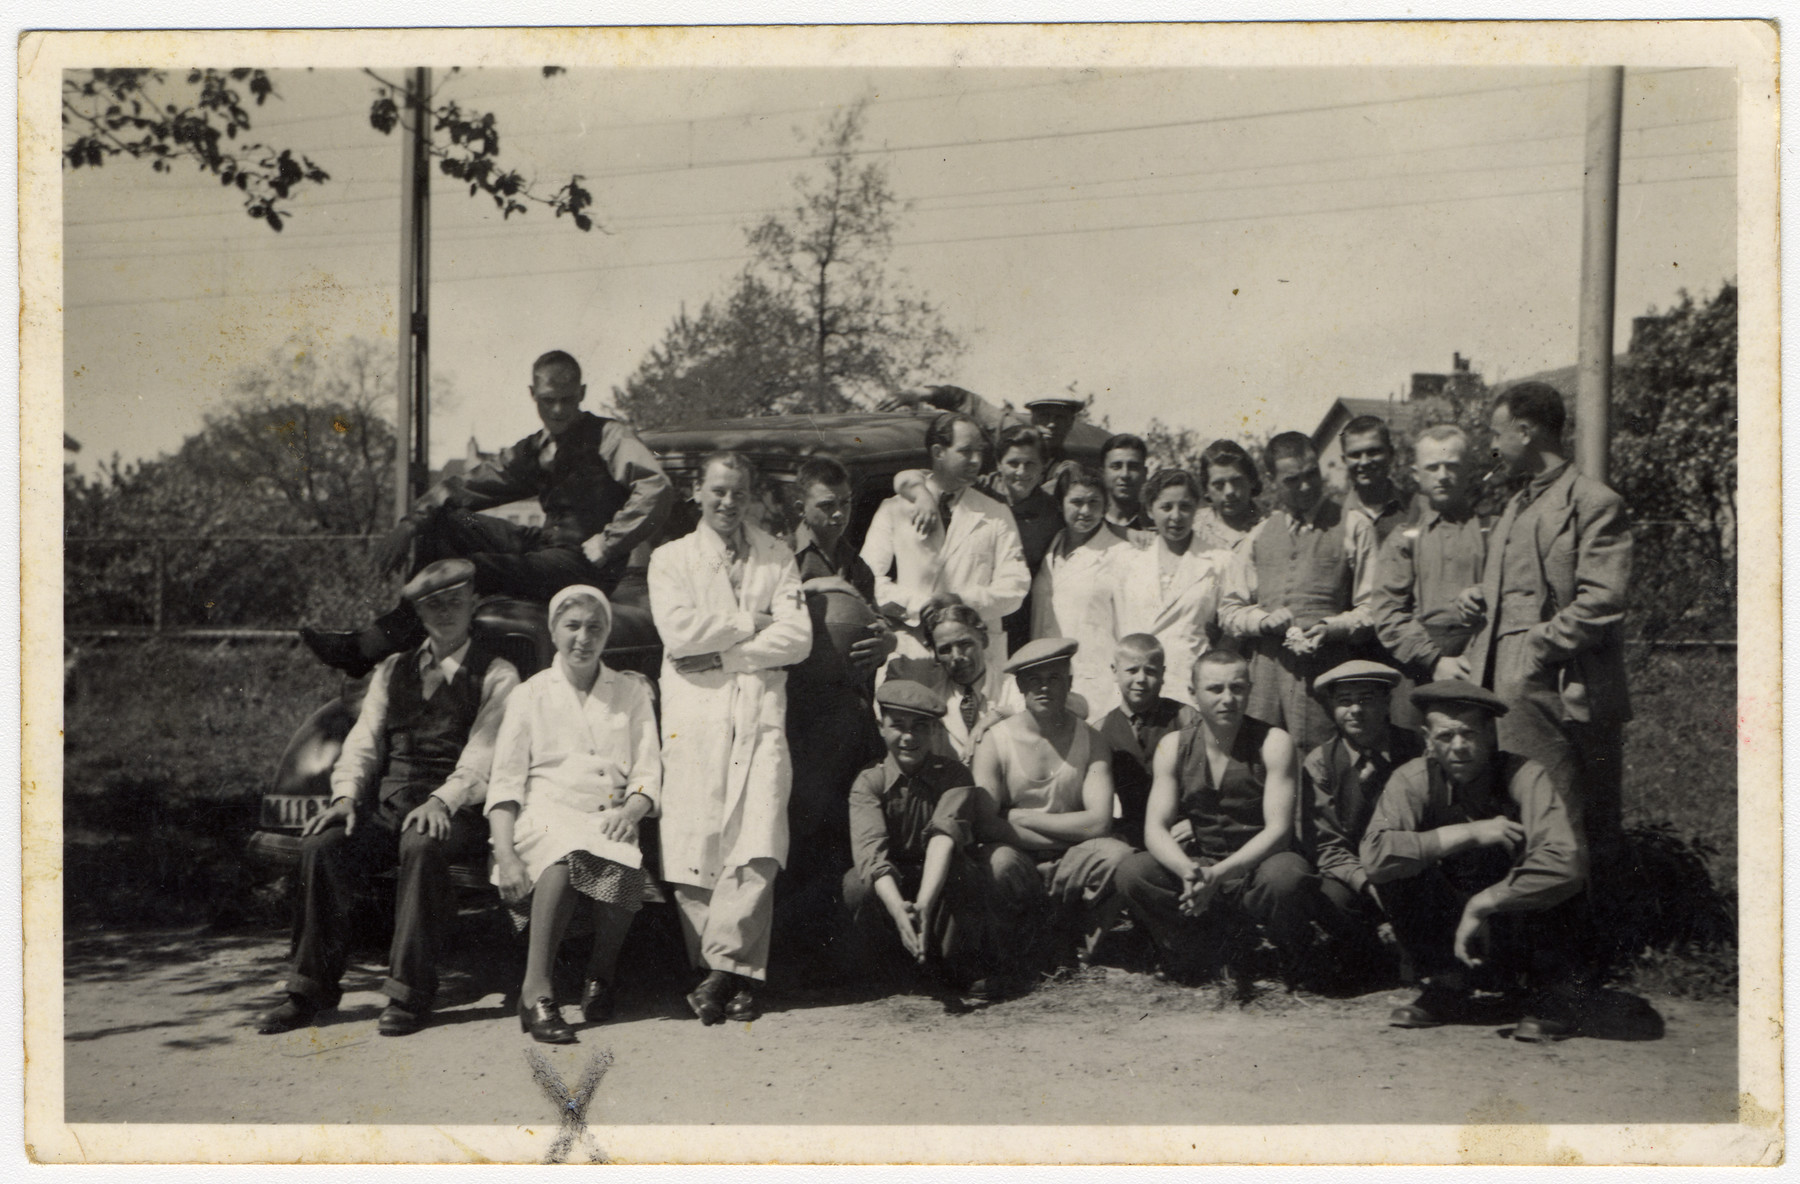 Group portrait of medical personnel and unidentified men in Sweden.   Among those pictured is Edith Scherzer, sitting second from the left in the first row.